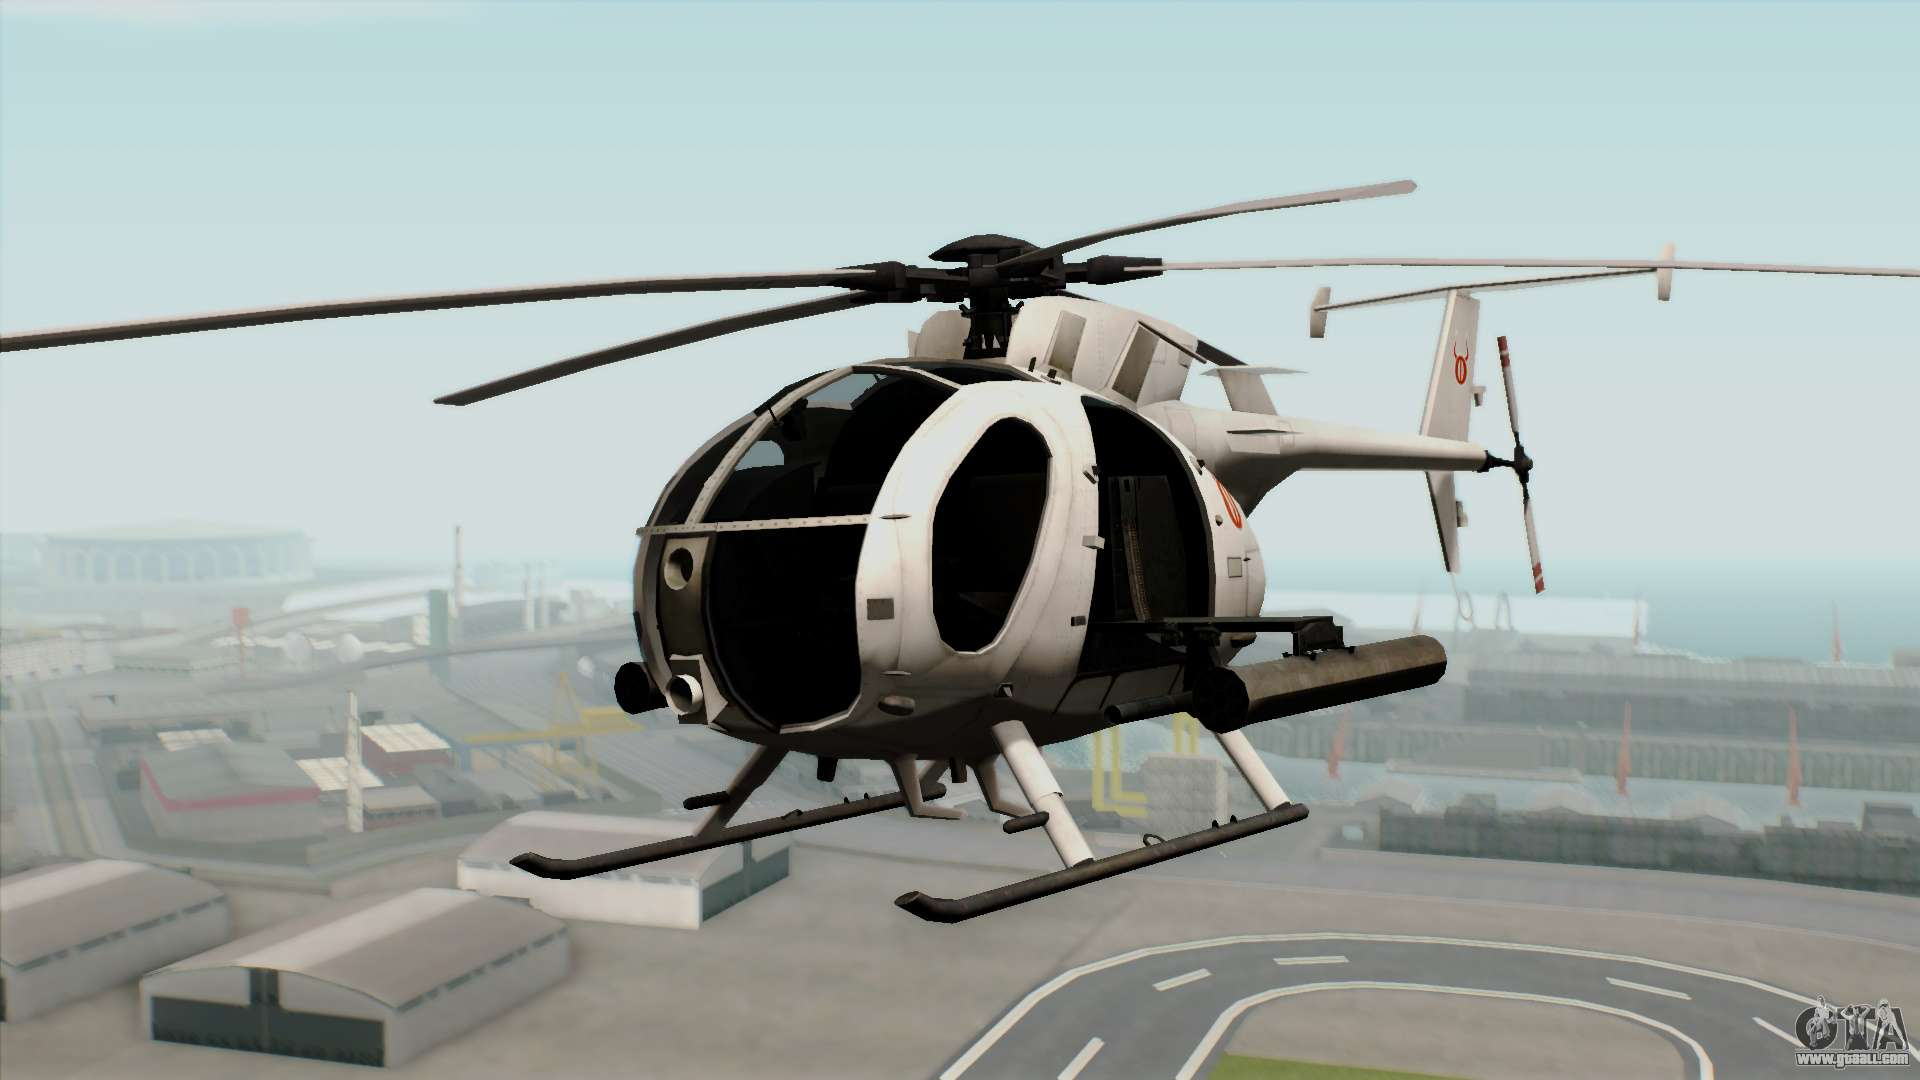 agricultural helicopter with 67052 Ah 6j Little Bird on Red Tractor Icon 1774 also 42811 Mh 6 Little Bird moreover 67052 Ah 6j Little Bird likewise Build Your Own Helicopter in addition 59404 Savage Gta 5 V12.